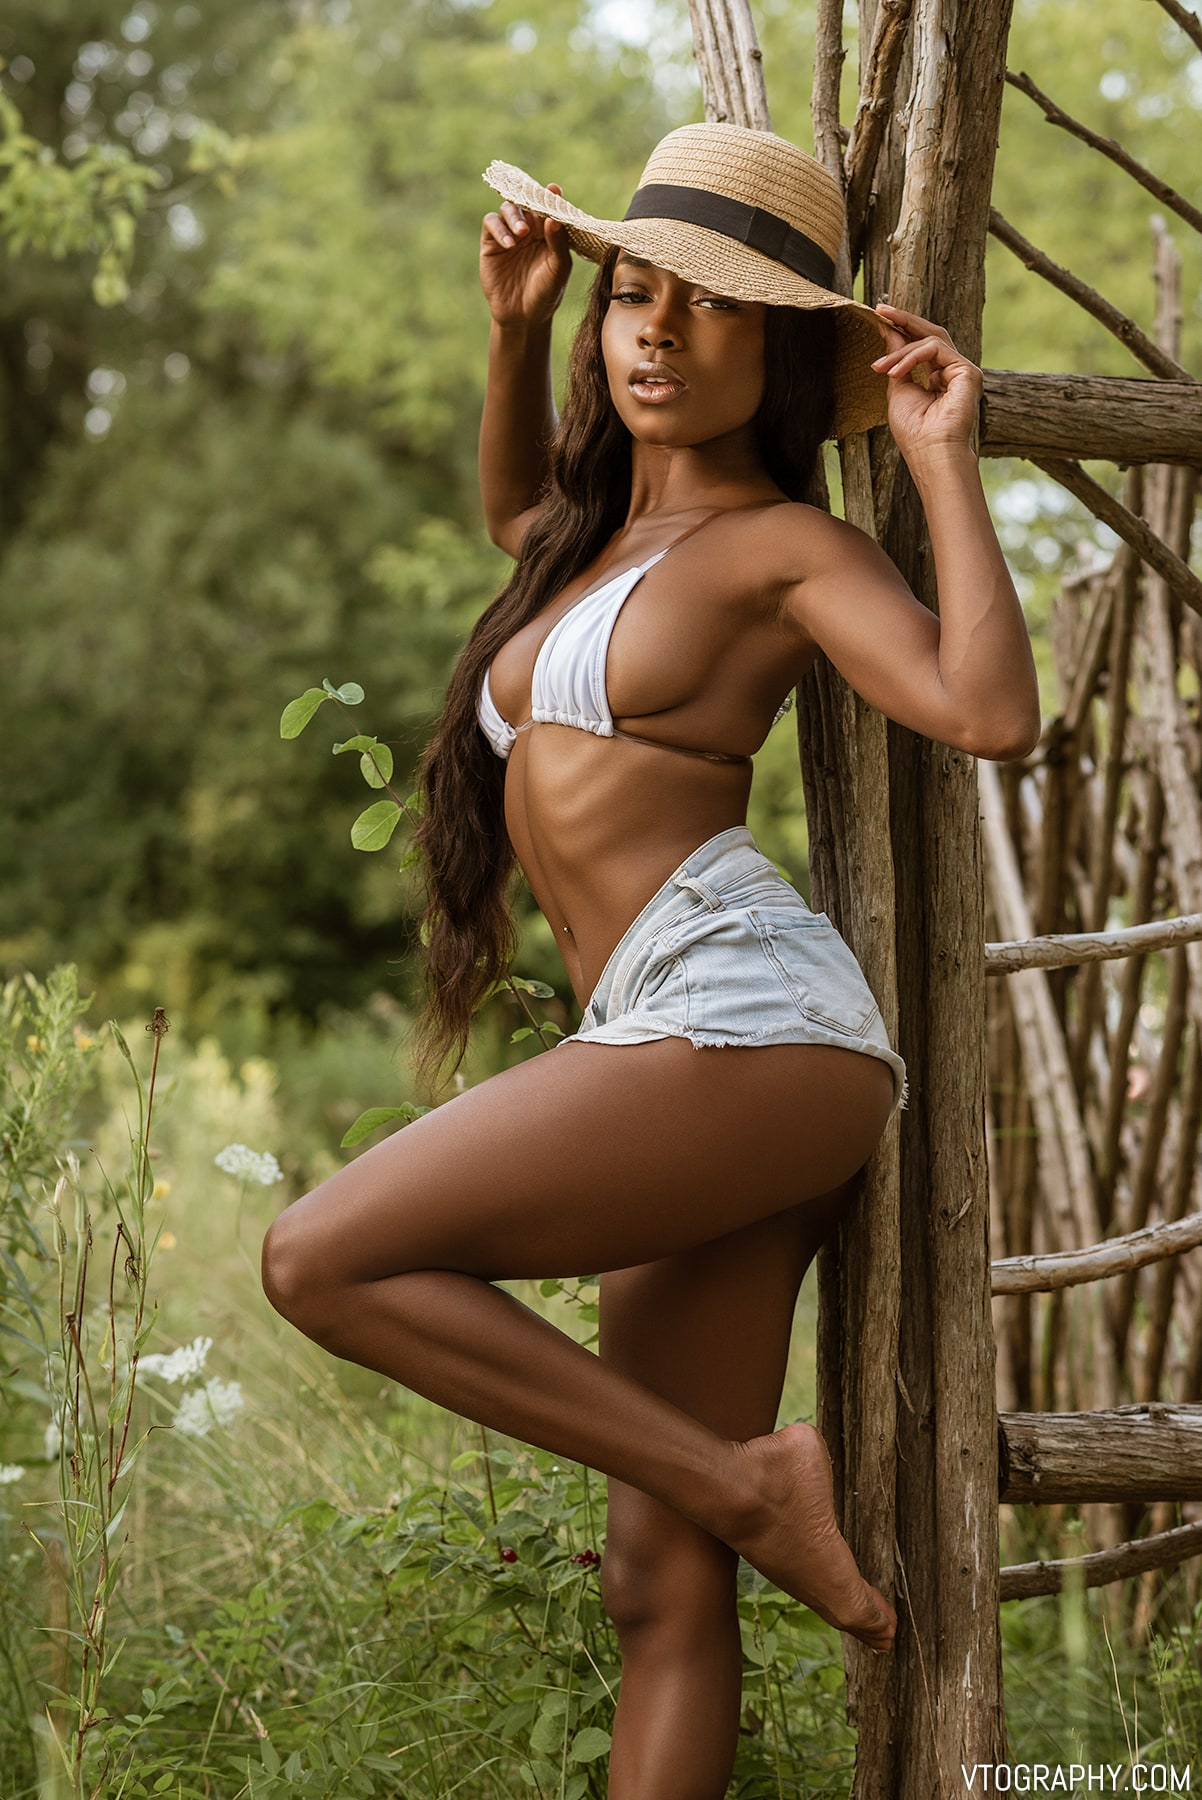 Brittany (@itssbrittbrat) — Queen Of The Splits — Black model in denim shorts and straw hat